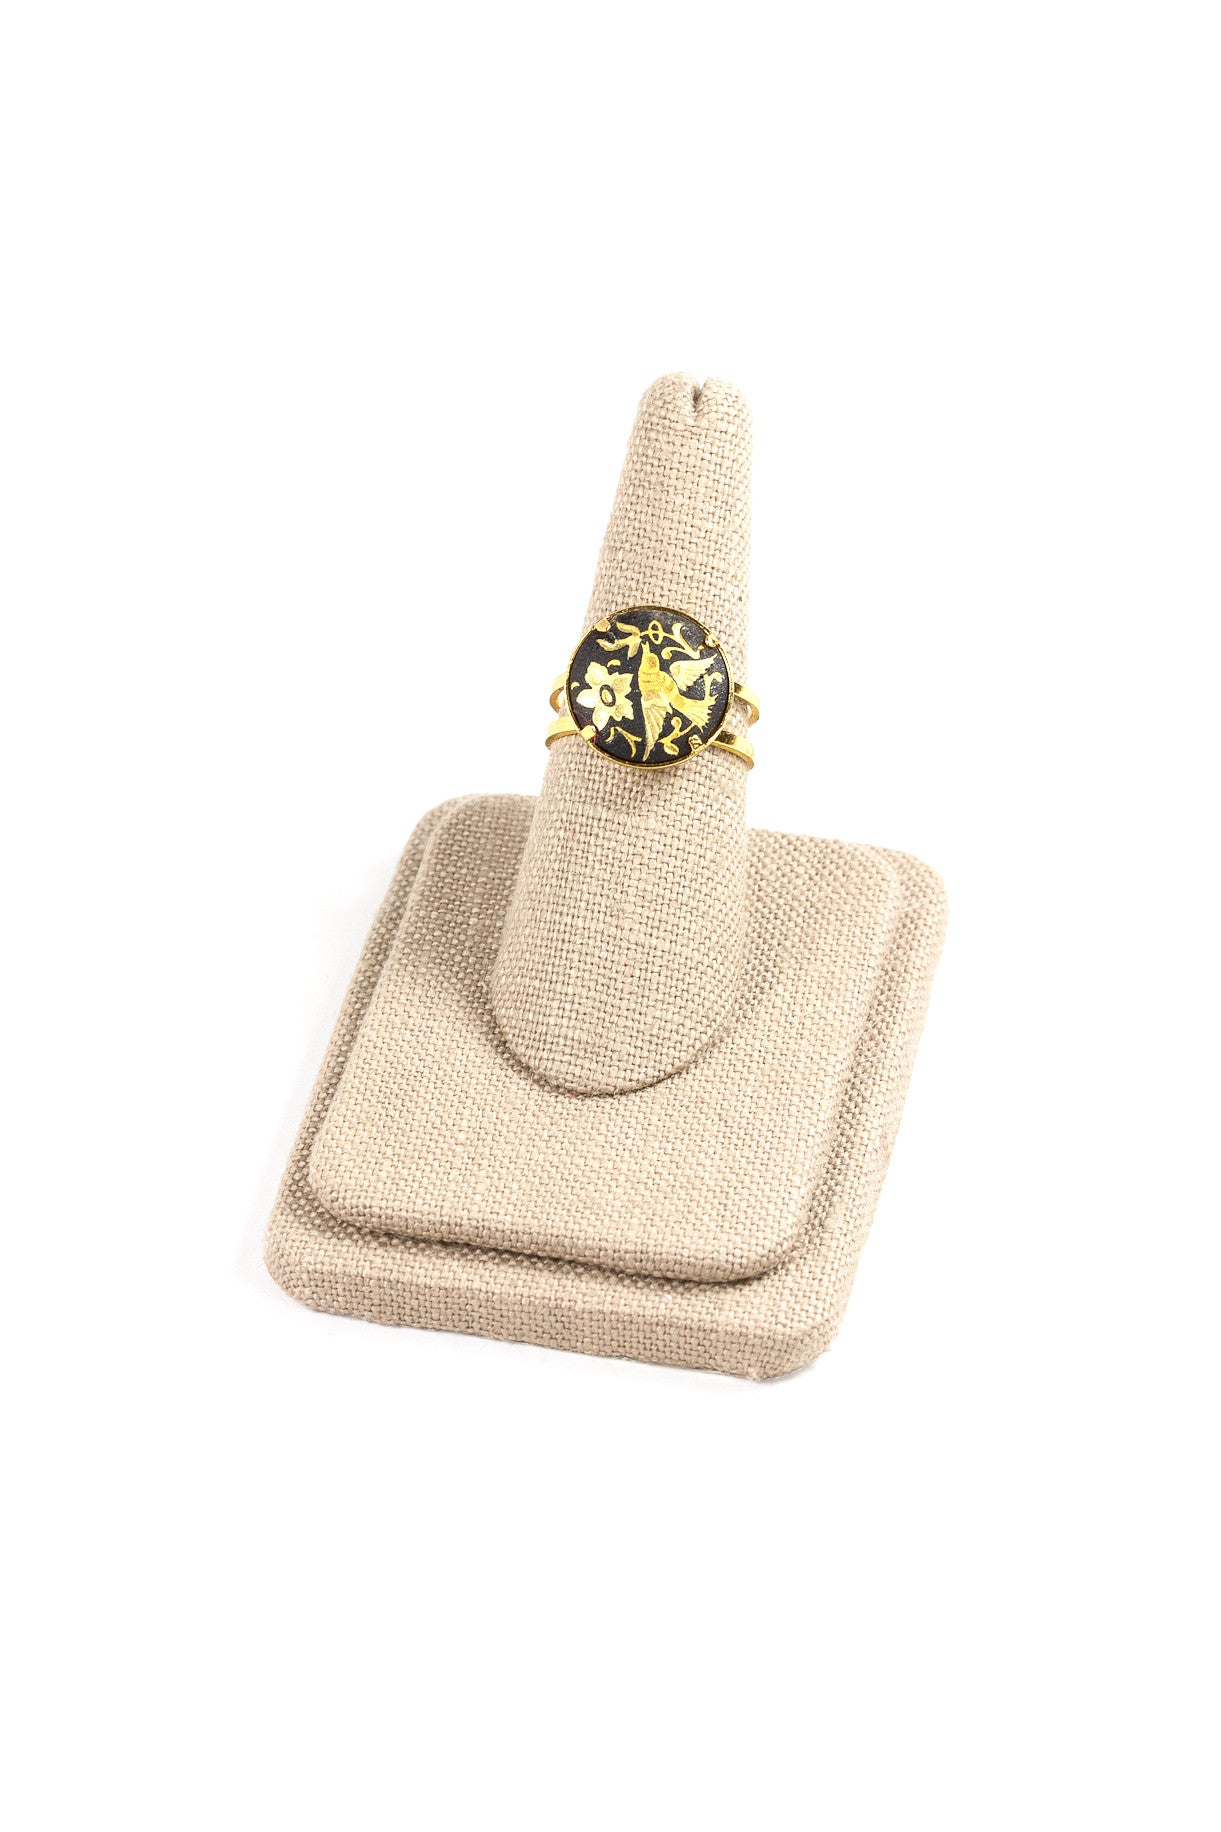 70's__Spanish__Bird Emblem Ring